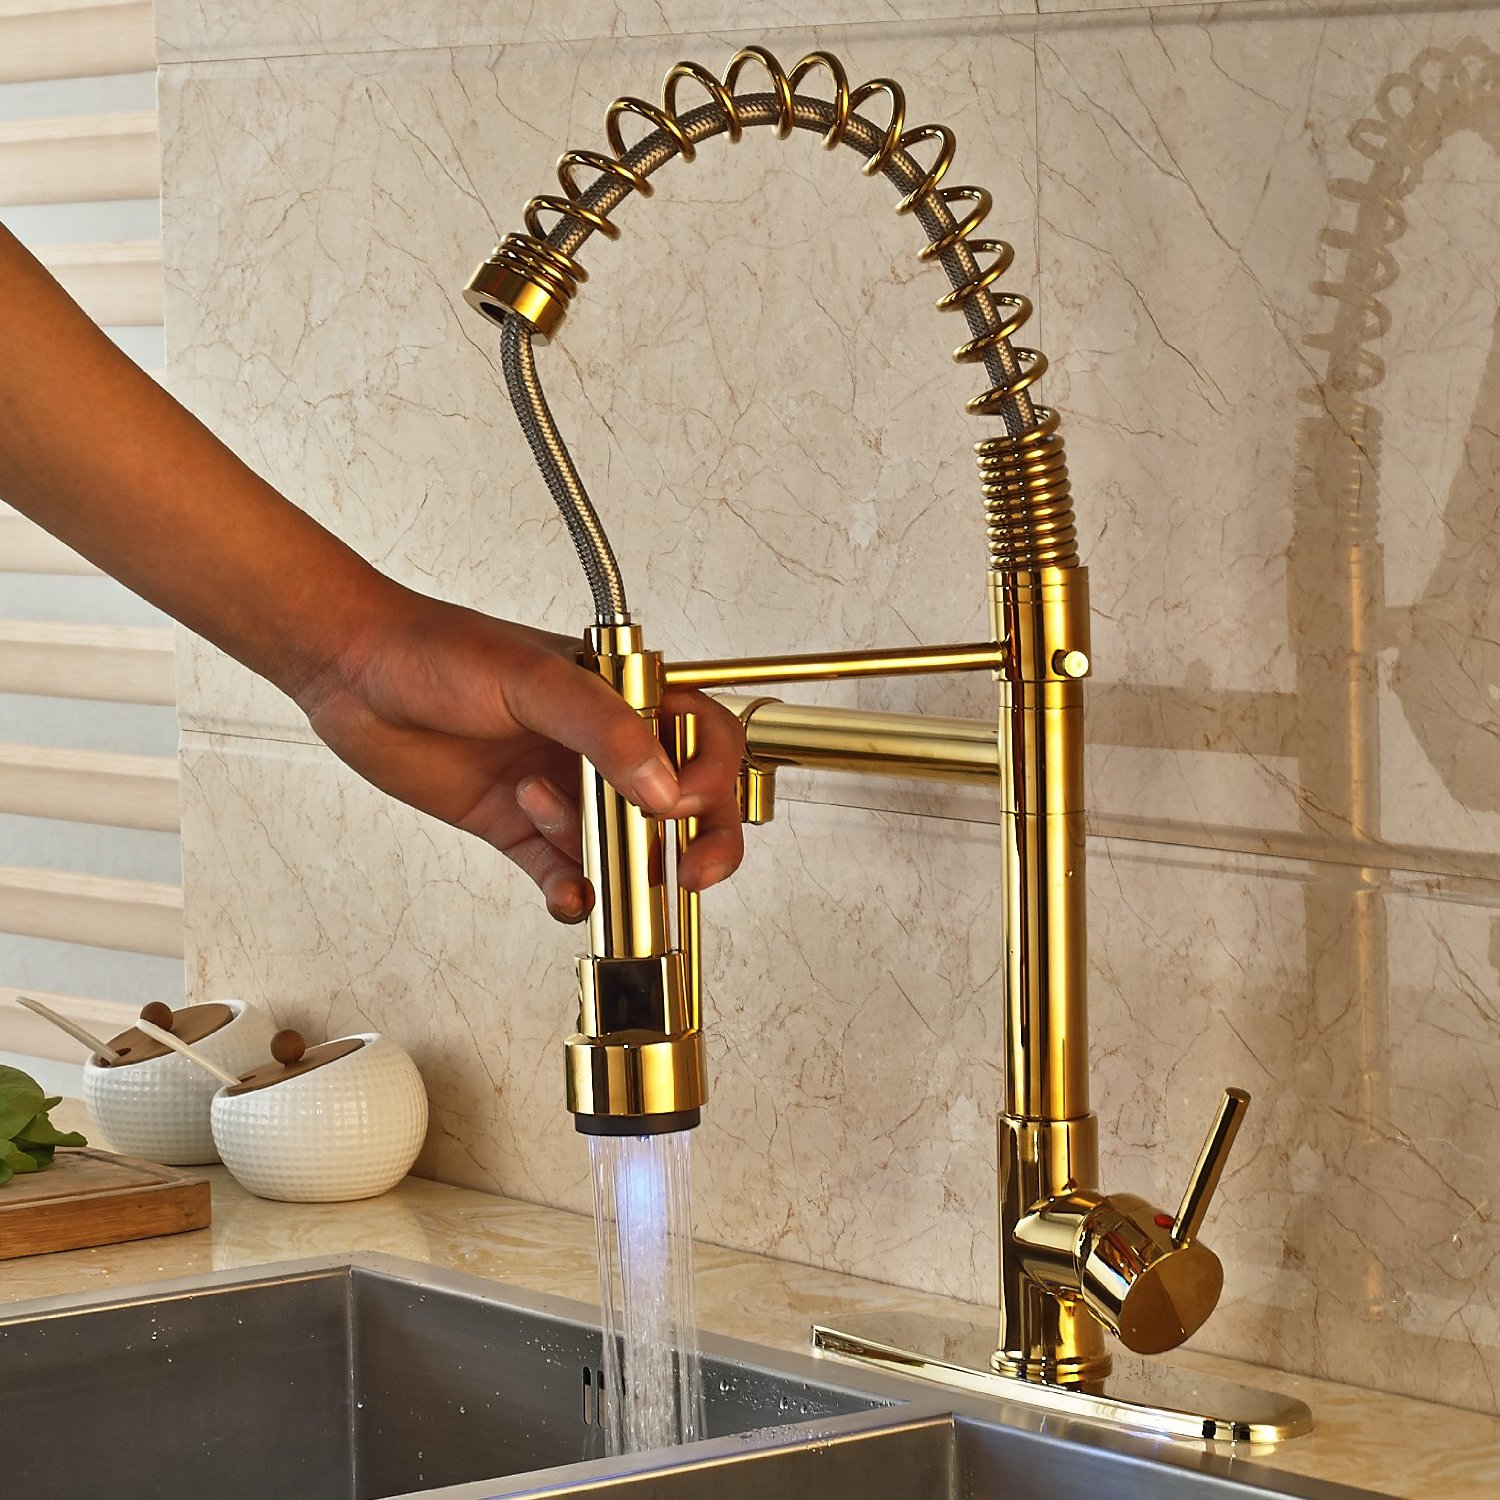 deck mounted kitchen sink faucet with pull down spray doubs deck mounted kitchen sink faucet with pull down spray